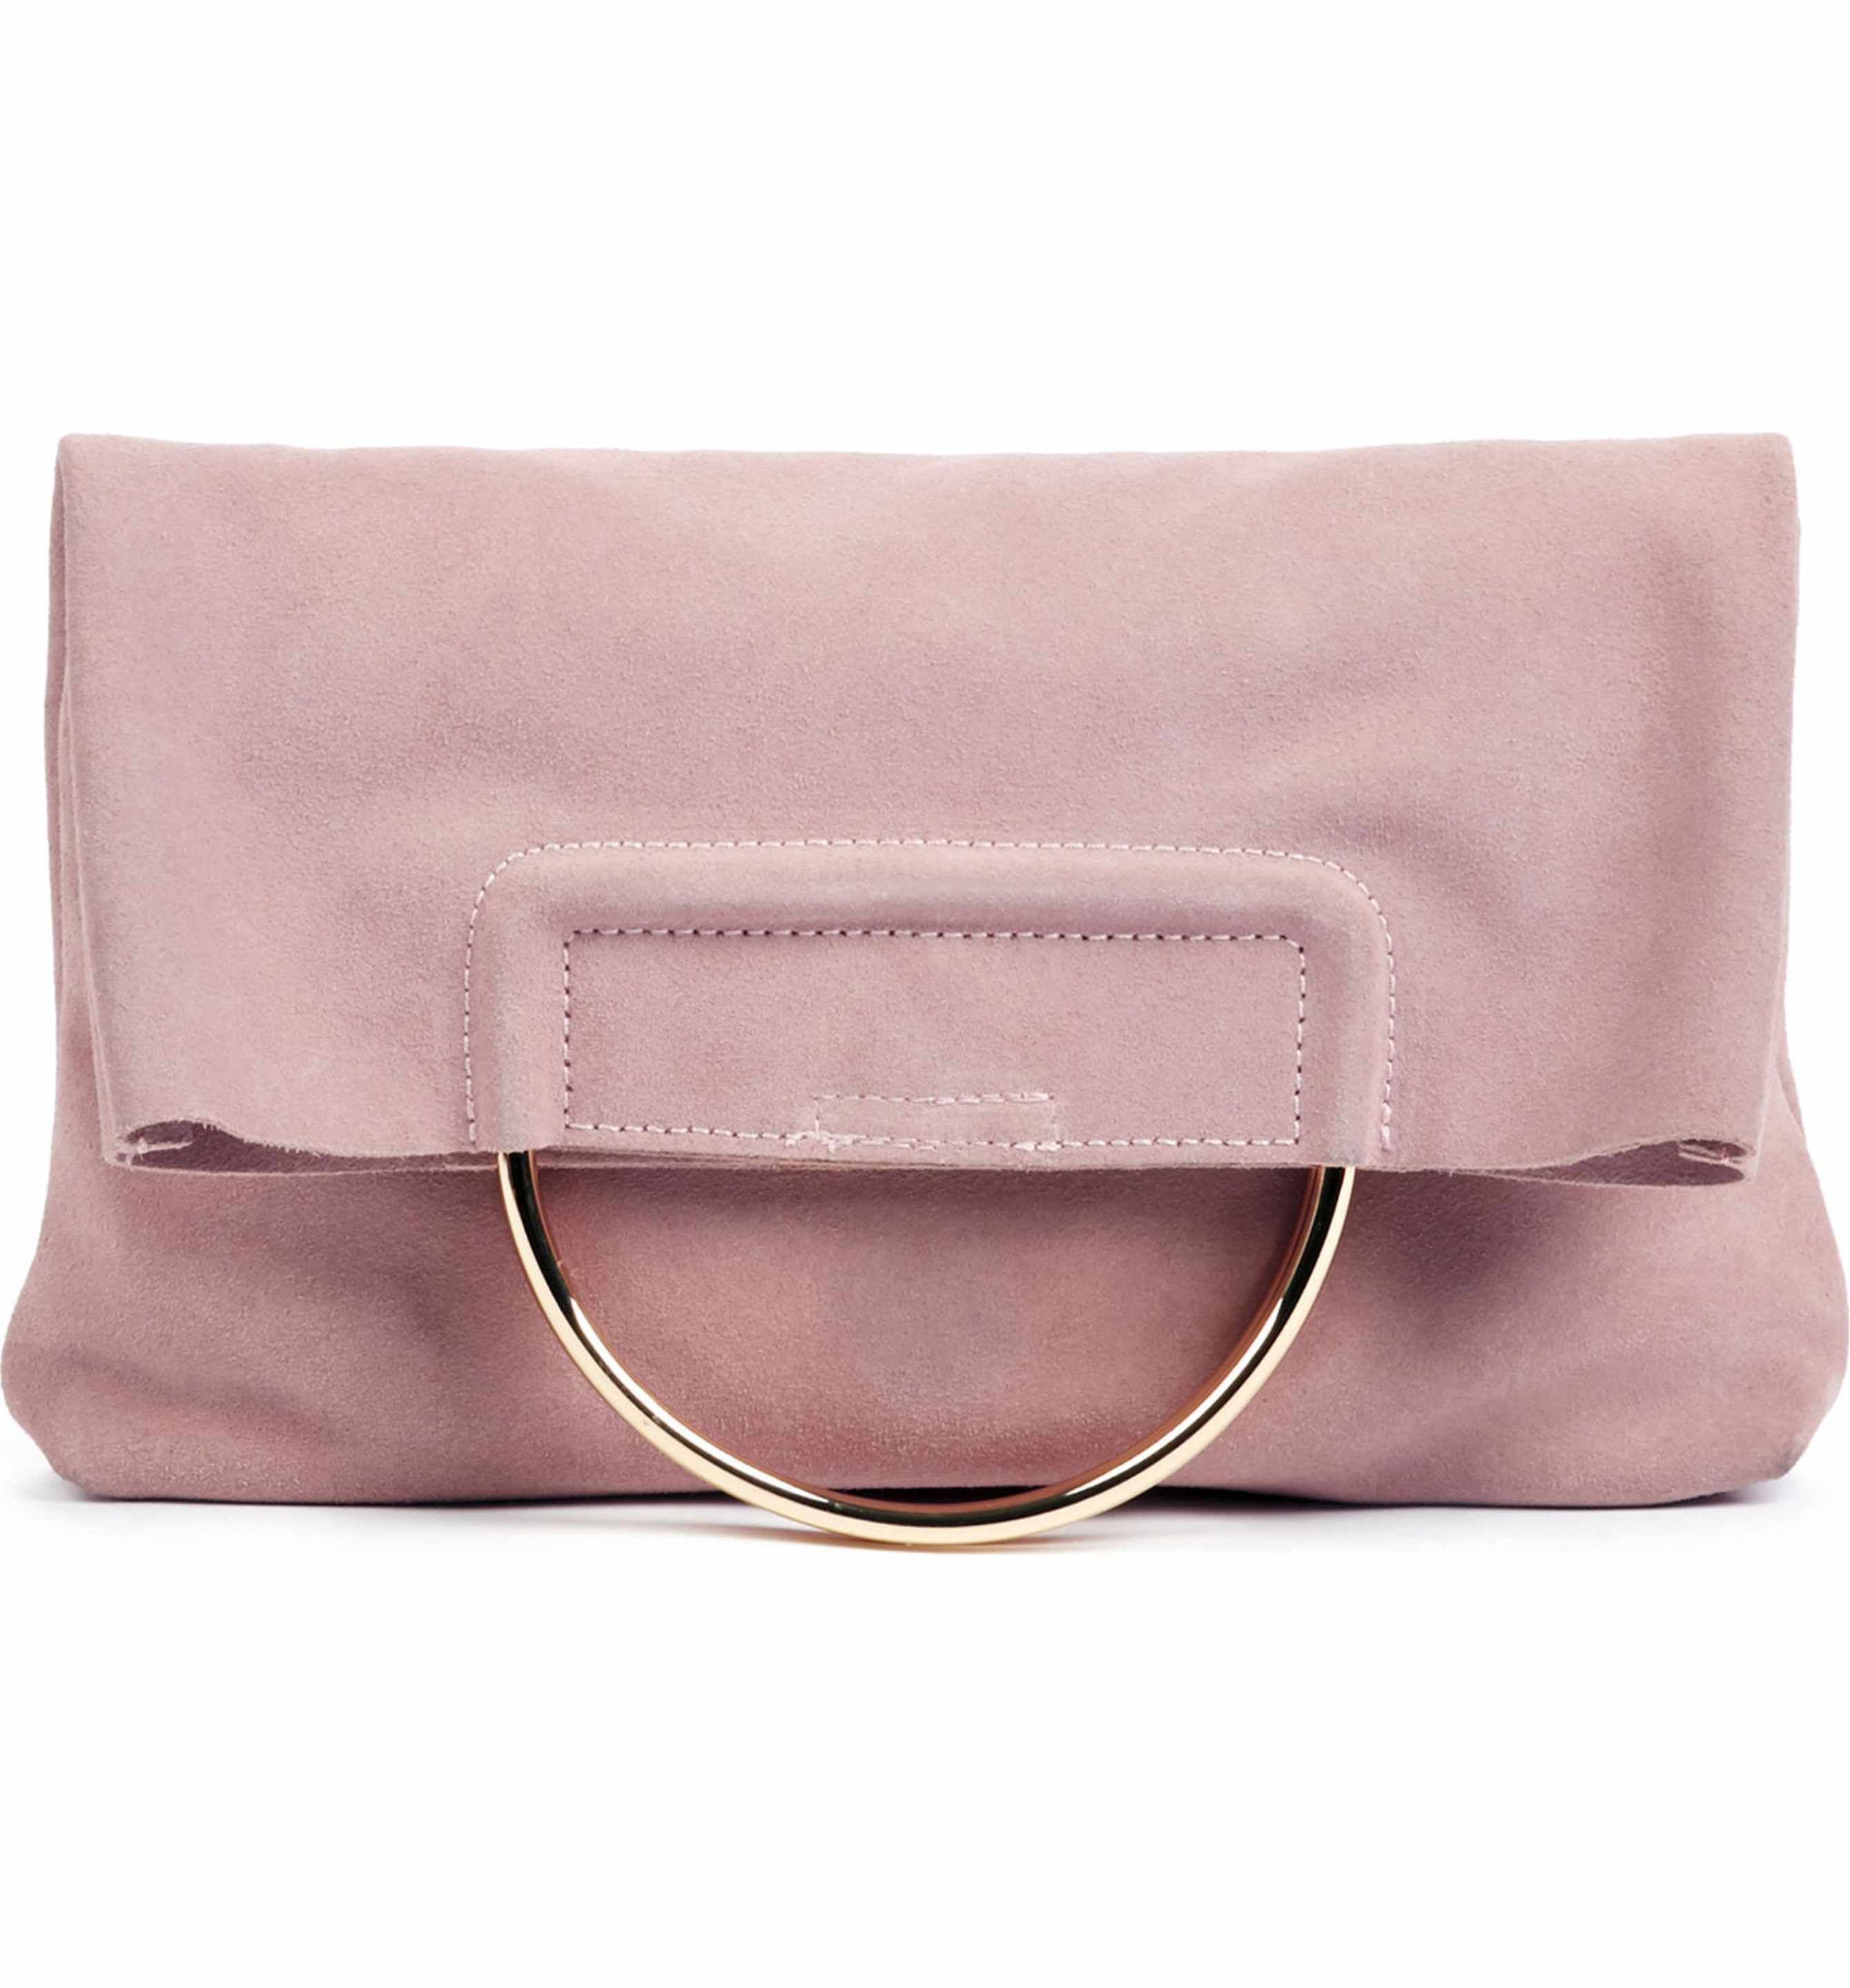 a00f475e5 Main Image - Sole Society Suede Foldover Clutch | Currently Crushing ...